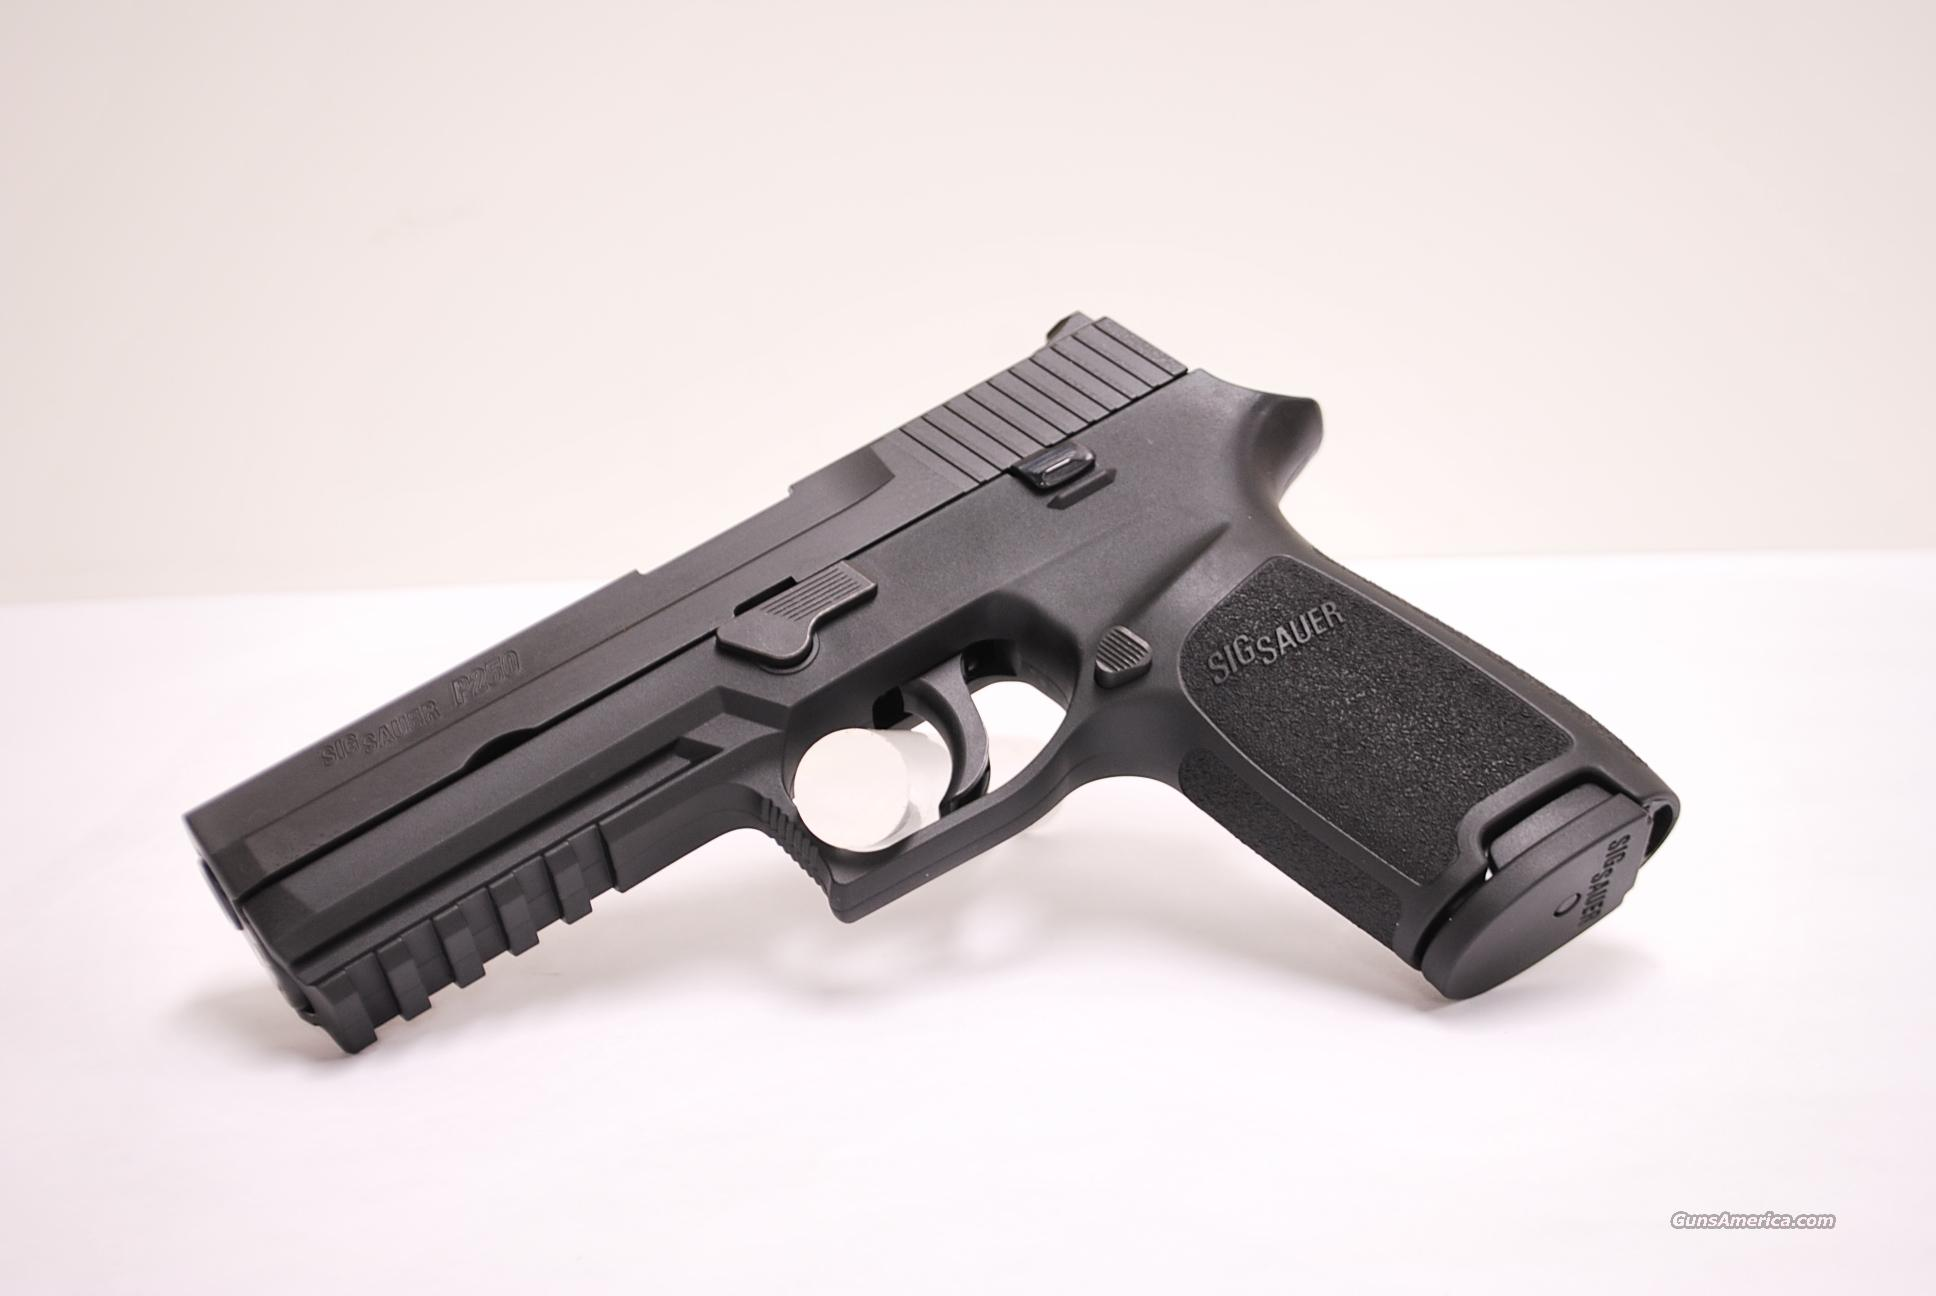 Sig Sauer P250 Full Size, 9mm, Night Sights  Guns > Pistols > Sig - Sauer/Sigarms Pistols > P250